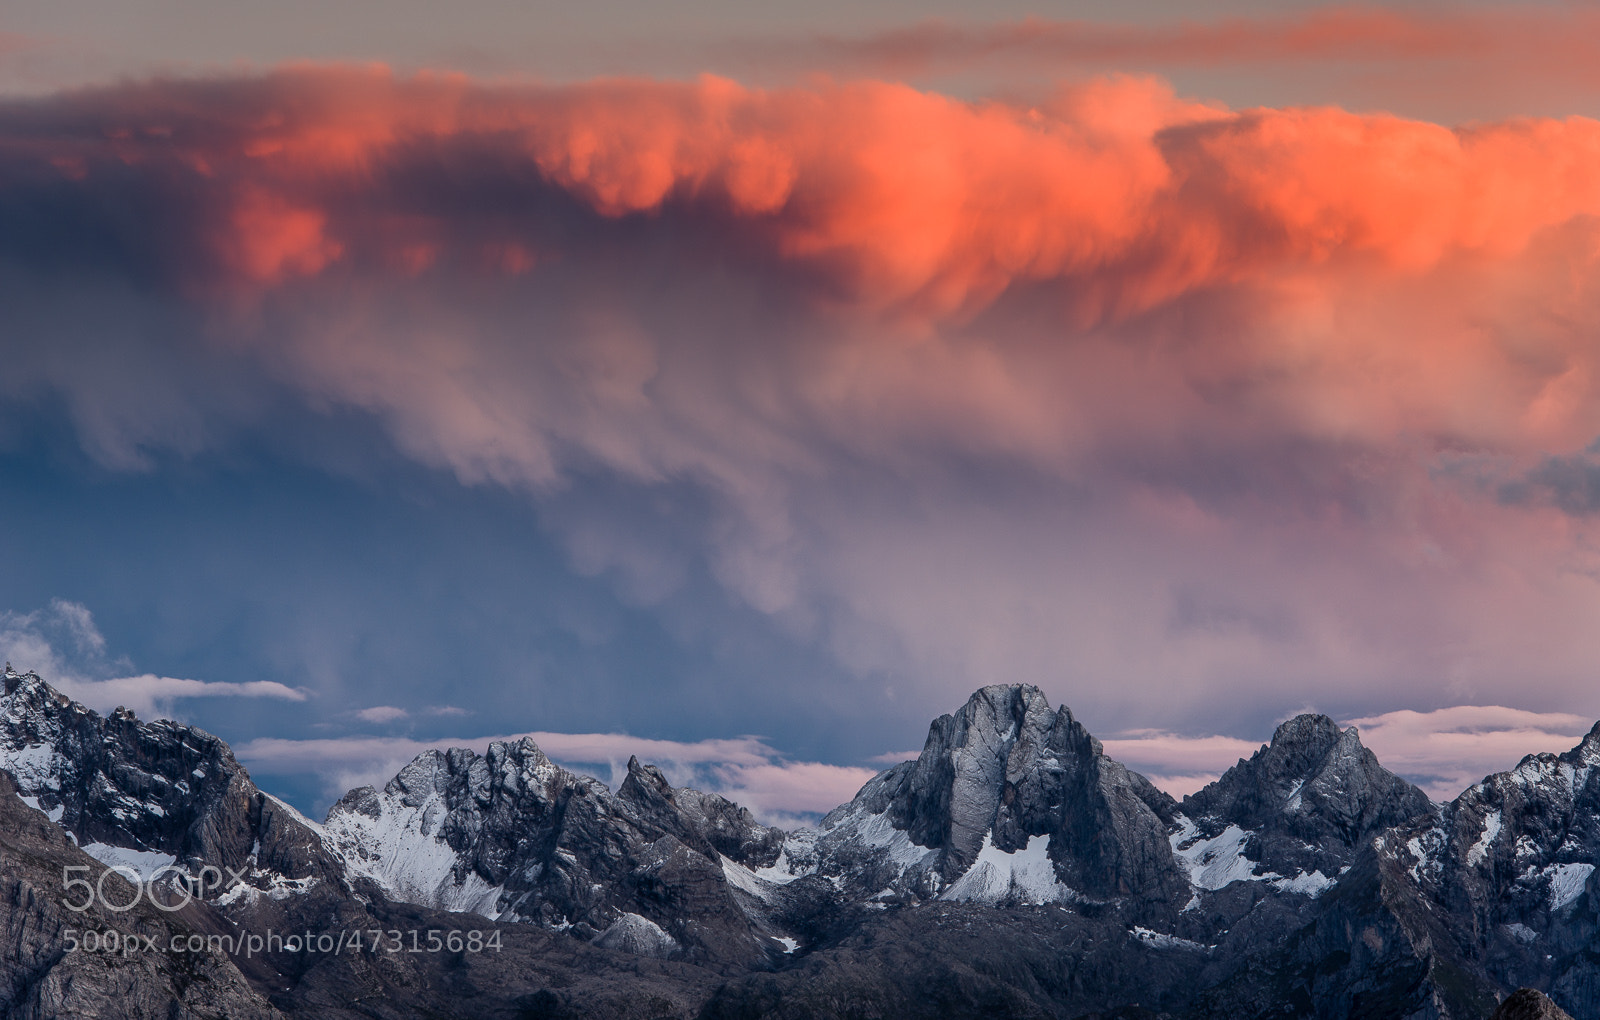 Photograph Sunset at Tre Cime di Lavaredo by Hans Kruse on 500px